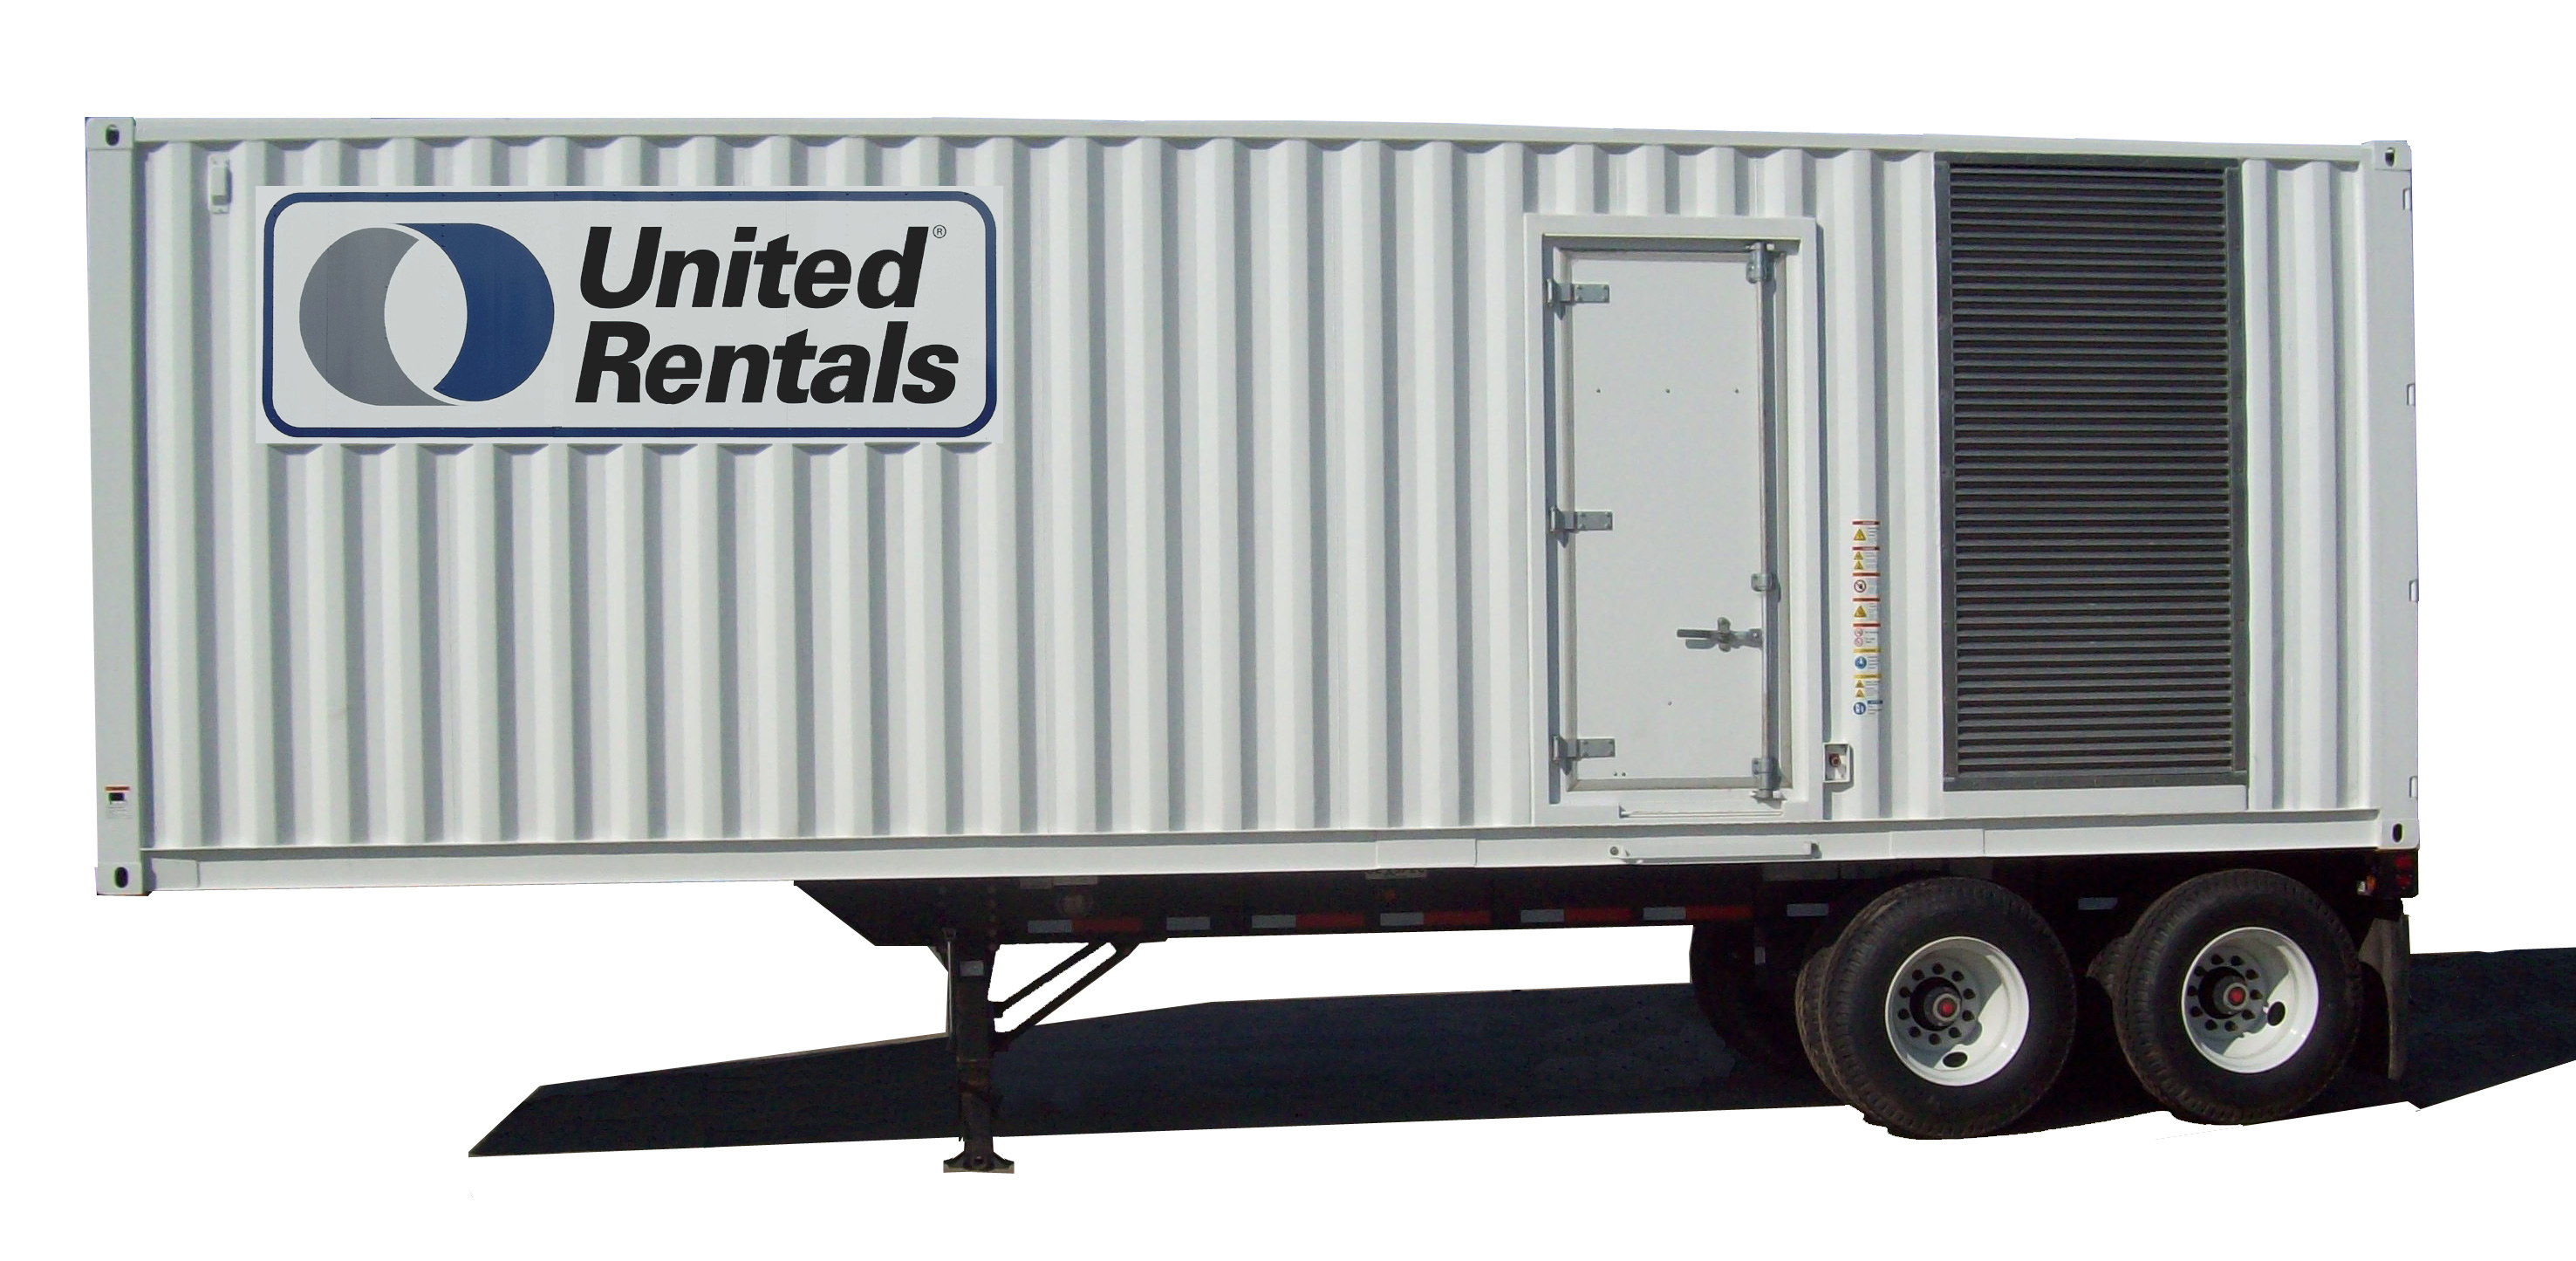 1000 KW Generator for Rent United Rentals